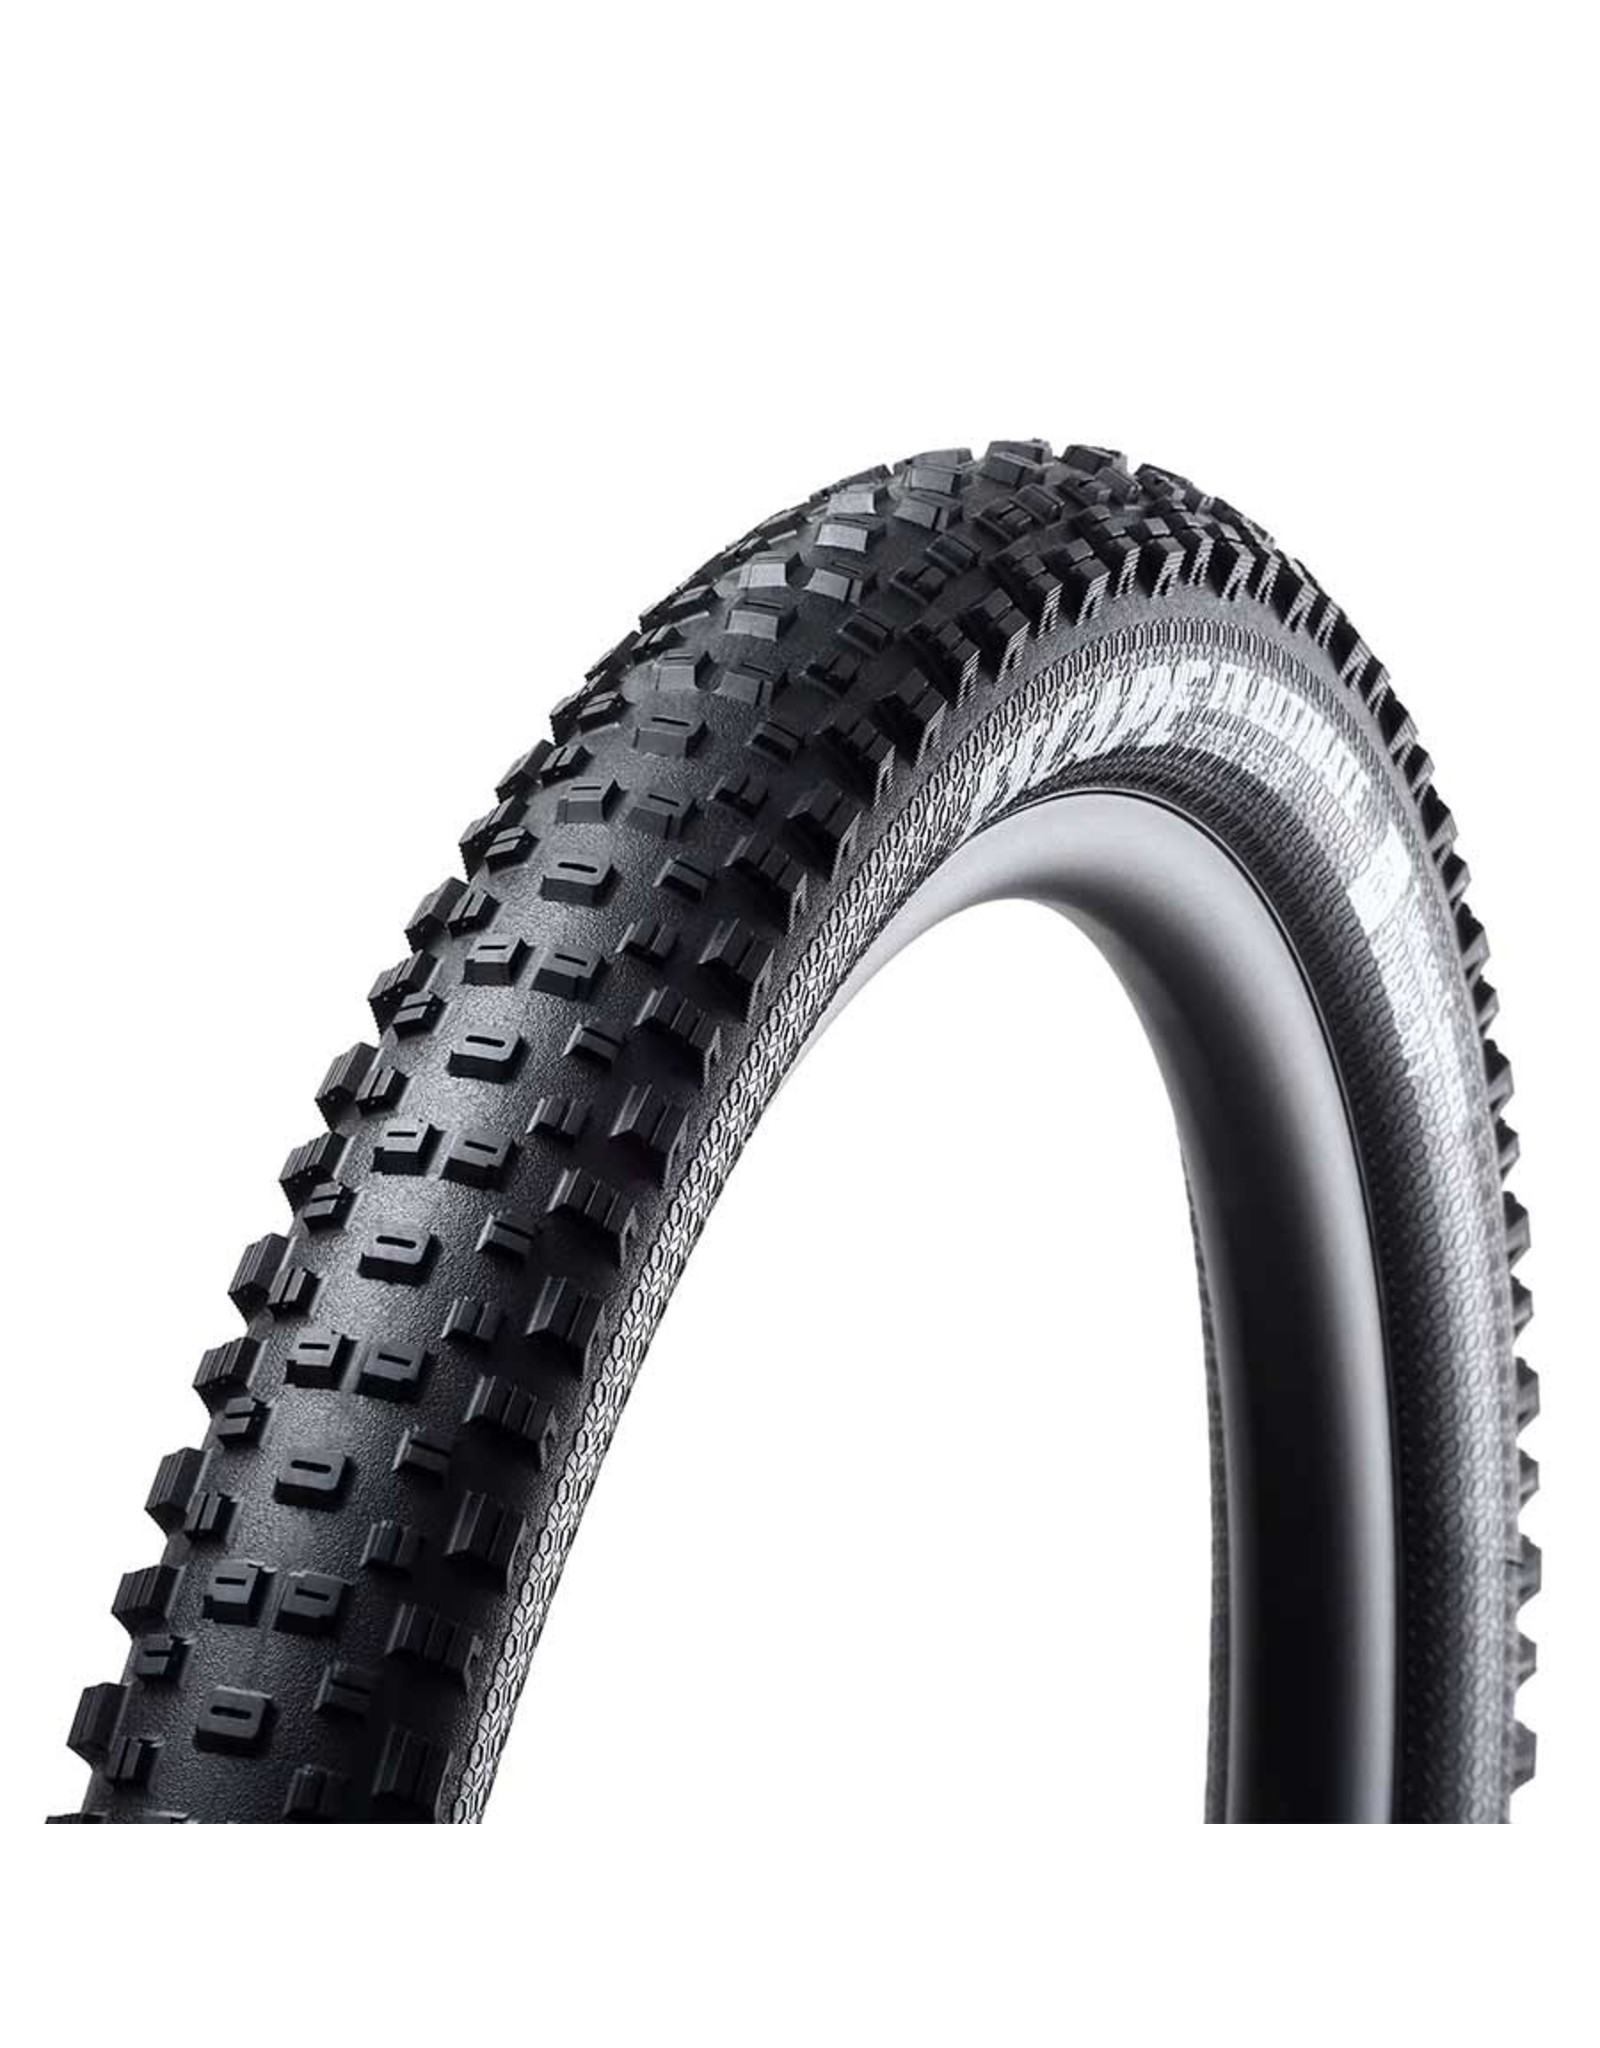 Goodyear, Escape, Tire, 27.5''x2.35, Folding, Tubeless Ready, Dynamic:R/T, Ultimate, 120TPI, Black